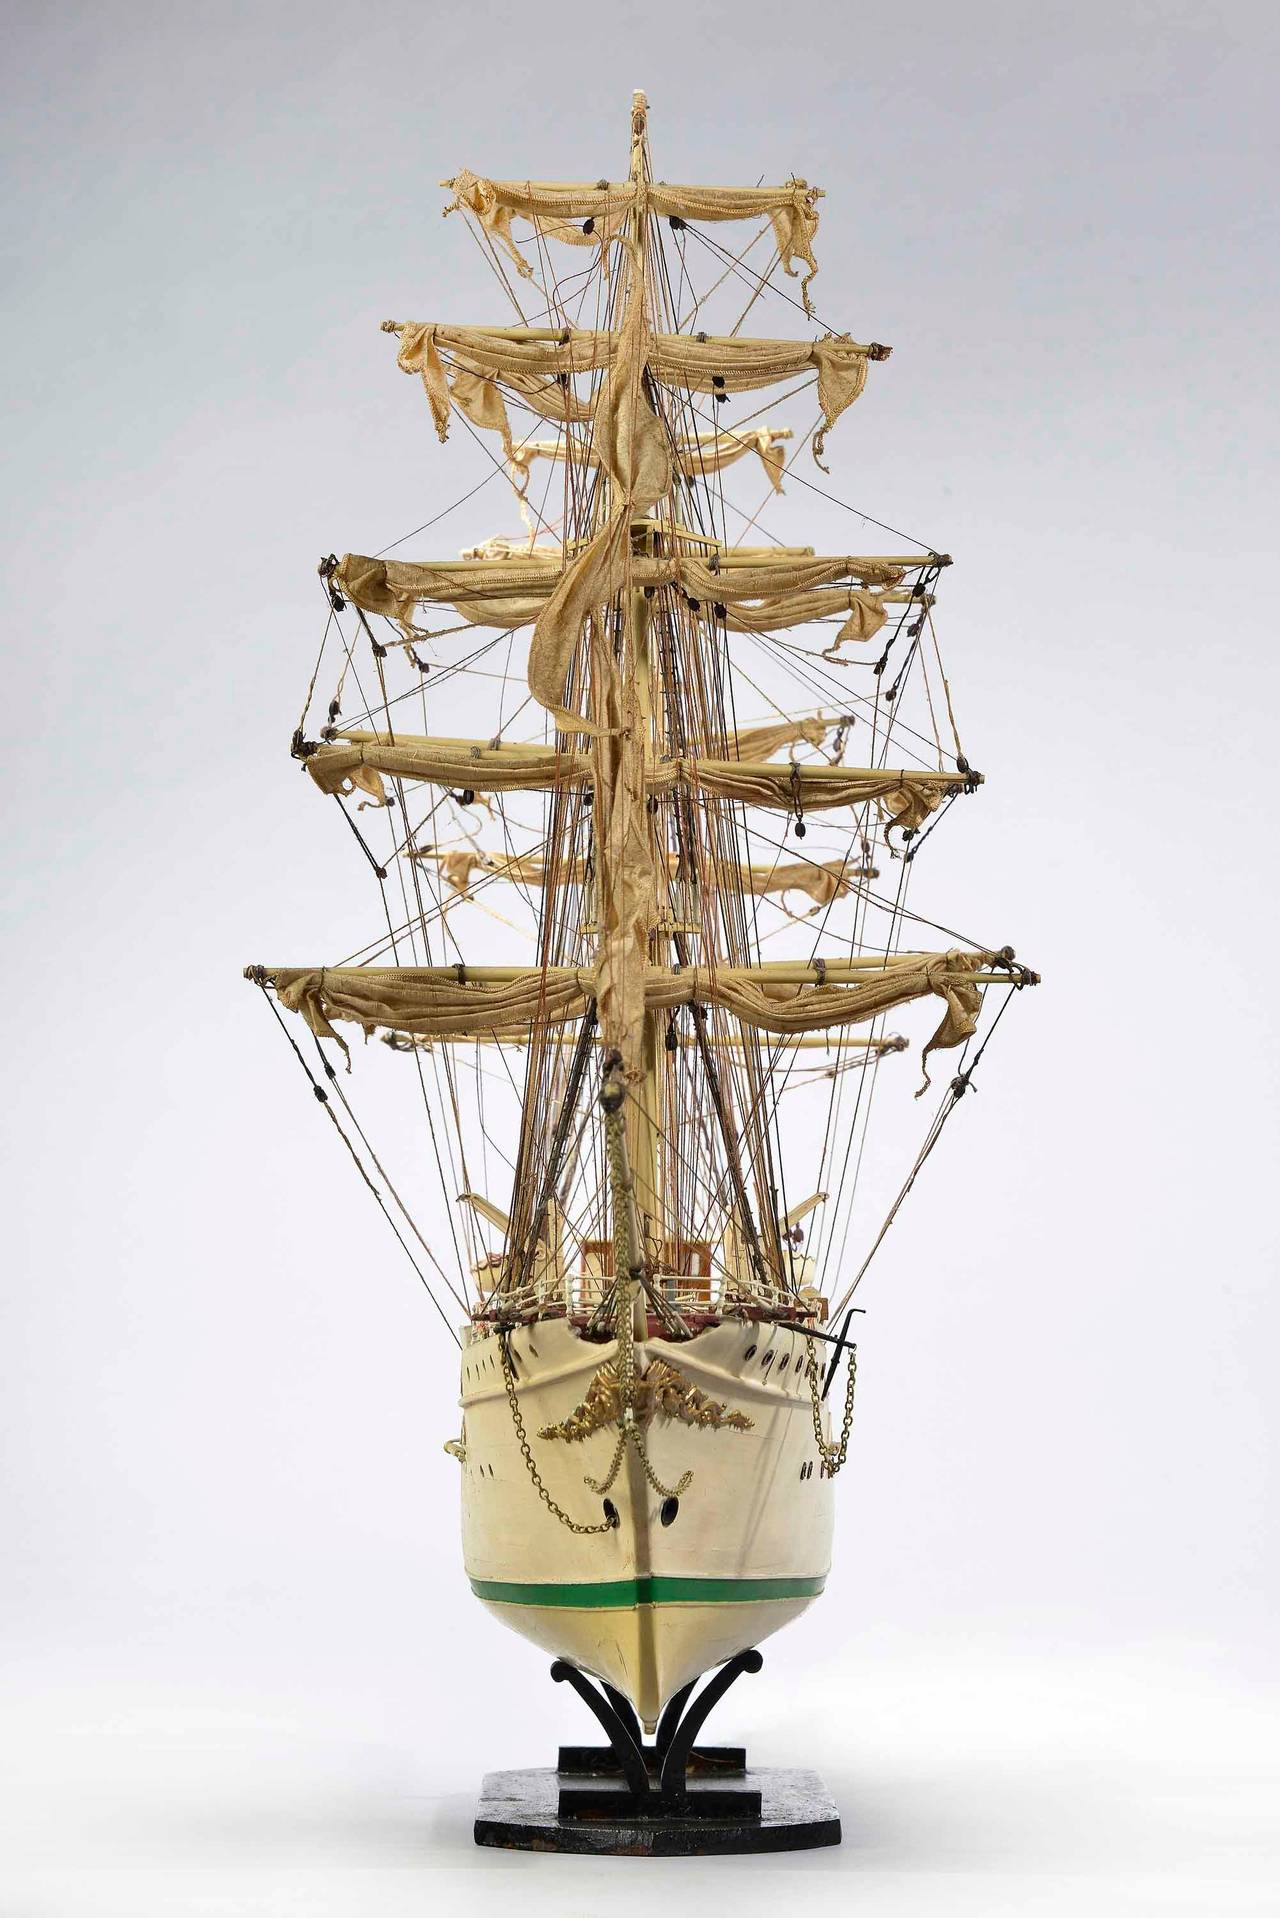 Mid-20th Century Ship Model In Good Condition For Sale In Peterborough, Northamptonshire